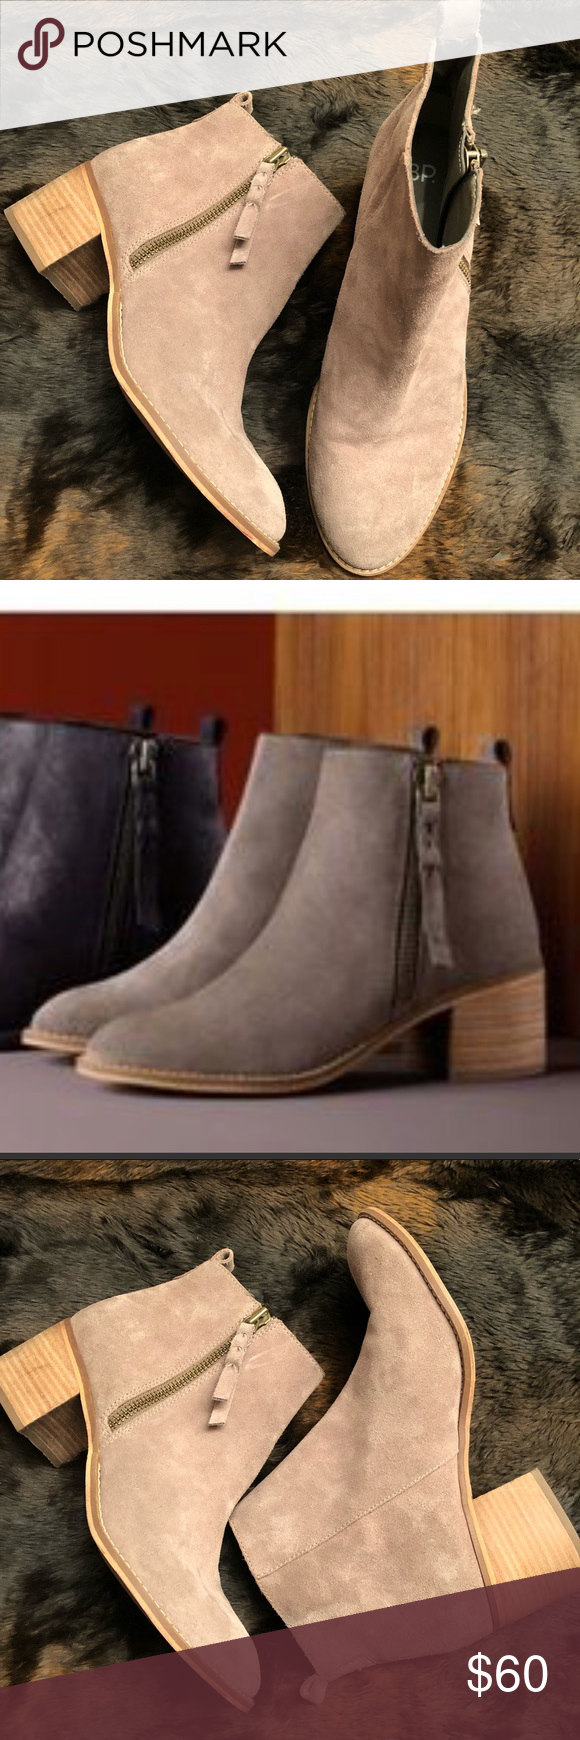 b7b01e4670471 BP Just Block Heel Bootie These boots are beautiful! They are composed of  leather and